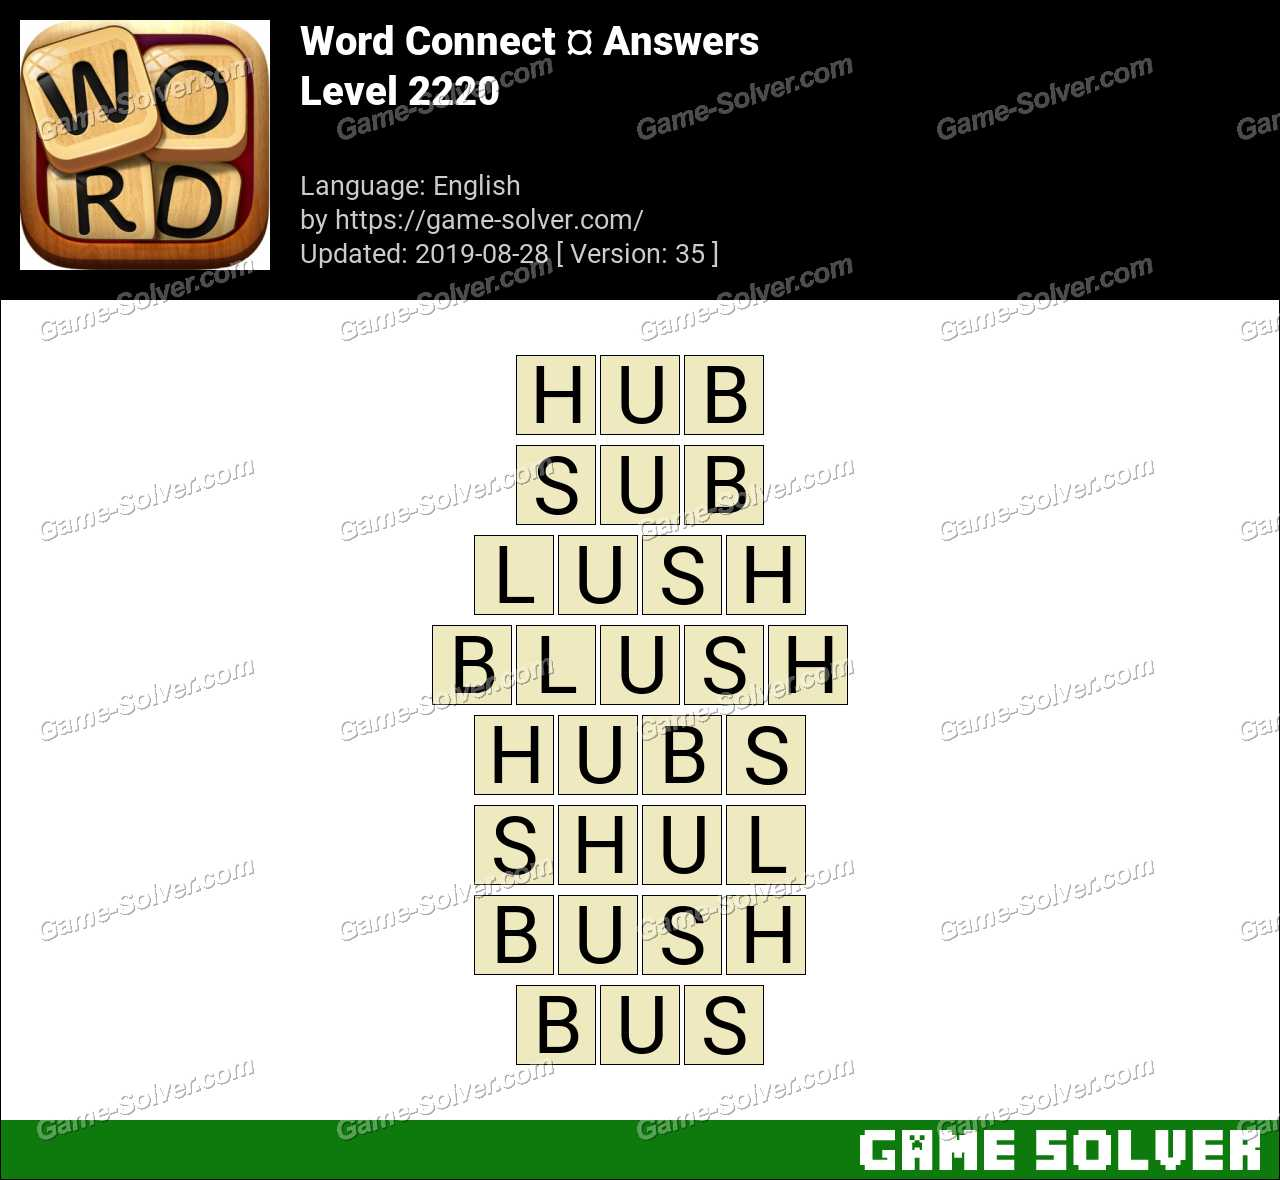 Word Connect Level 2220 Answers